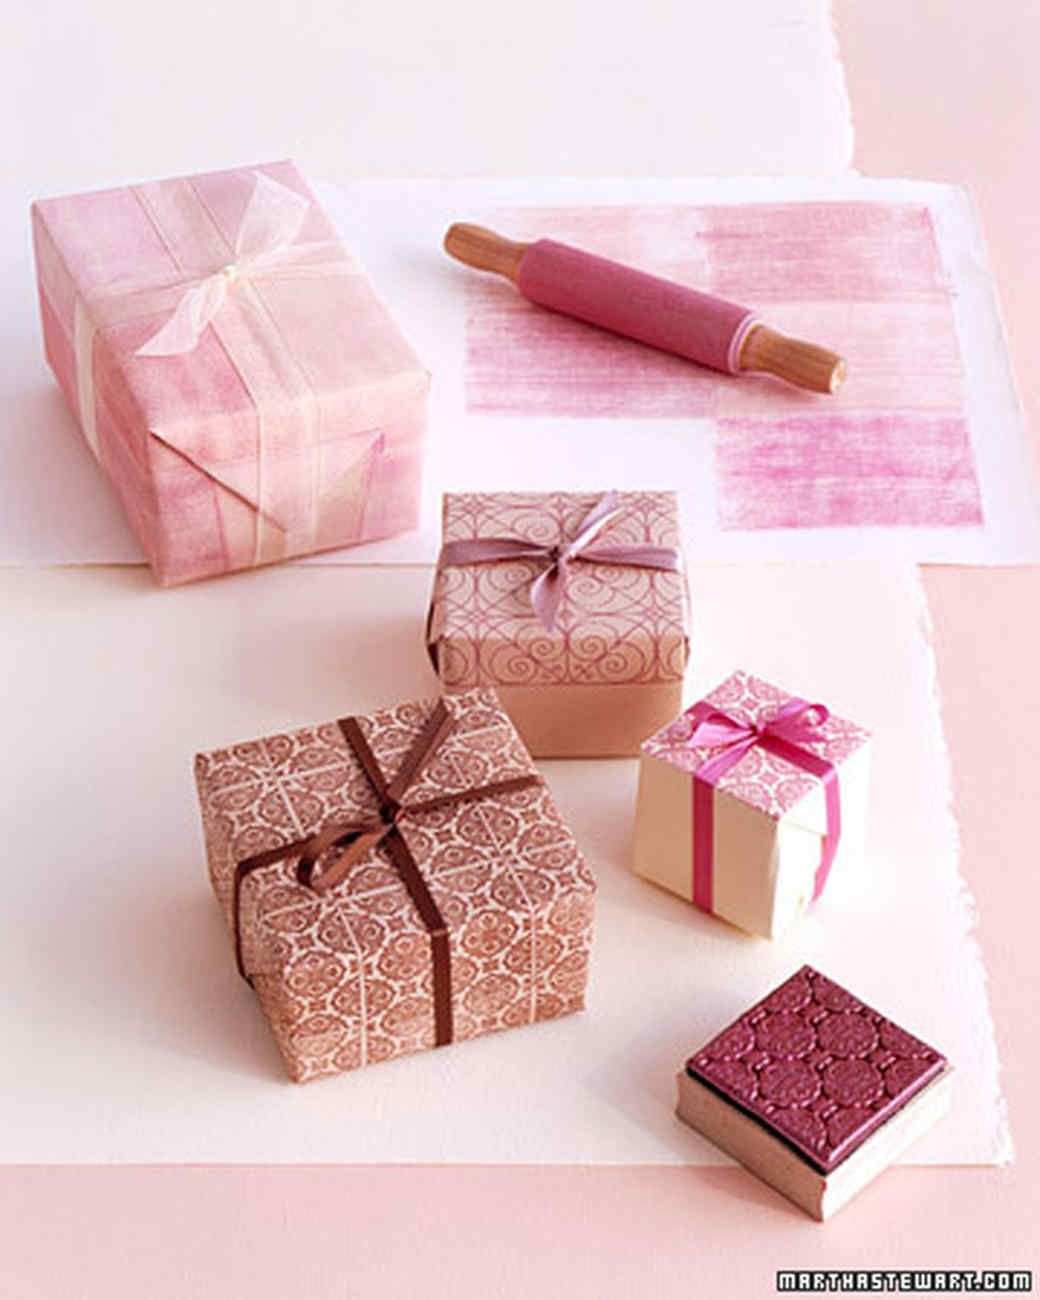 Gift-Wrapping Ideas | Wrapping ideas, Packaging ideas and Paper crafting